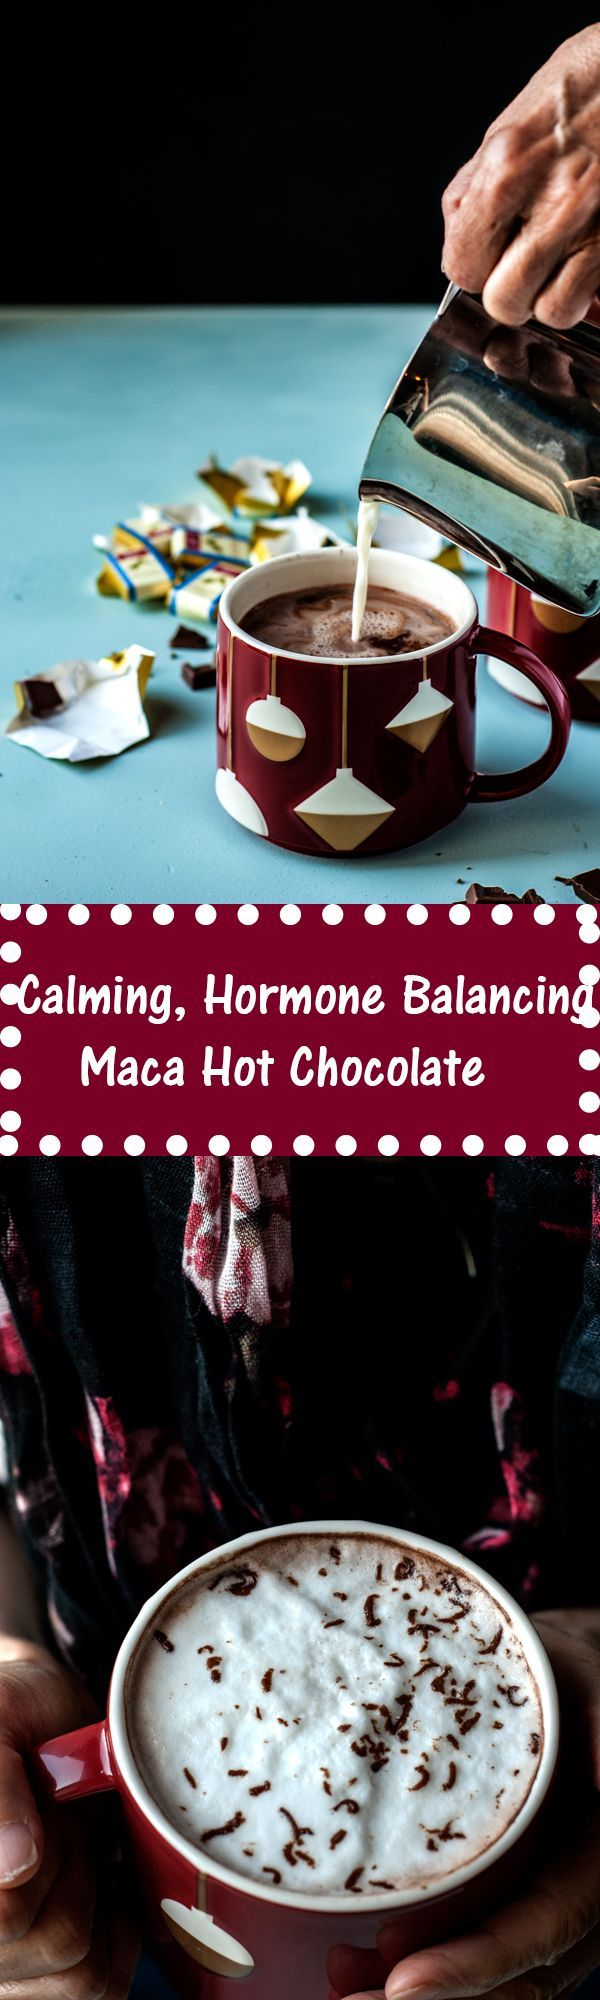 recipe for my favorite healthy, hormone balancing maca hot chocolate. Simple, delicious, vegan friendly and super comforting.